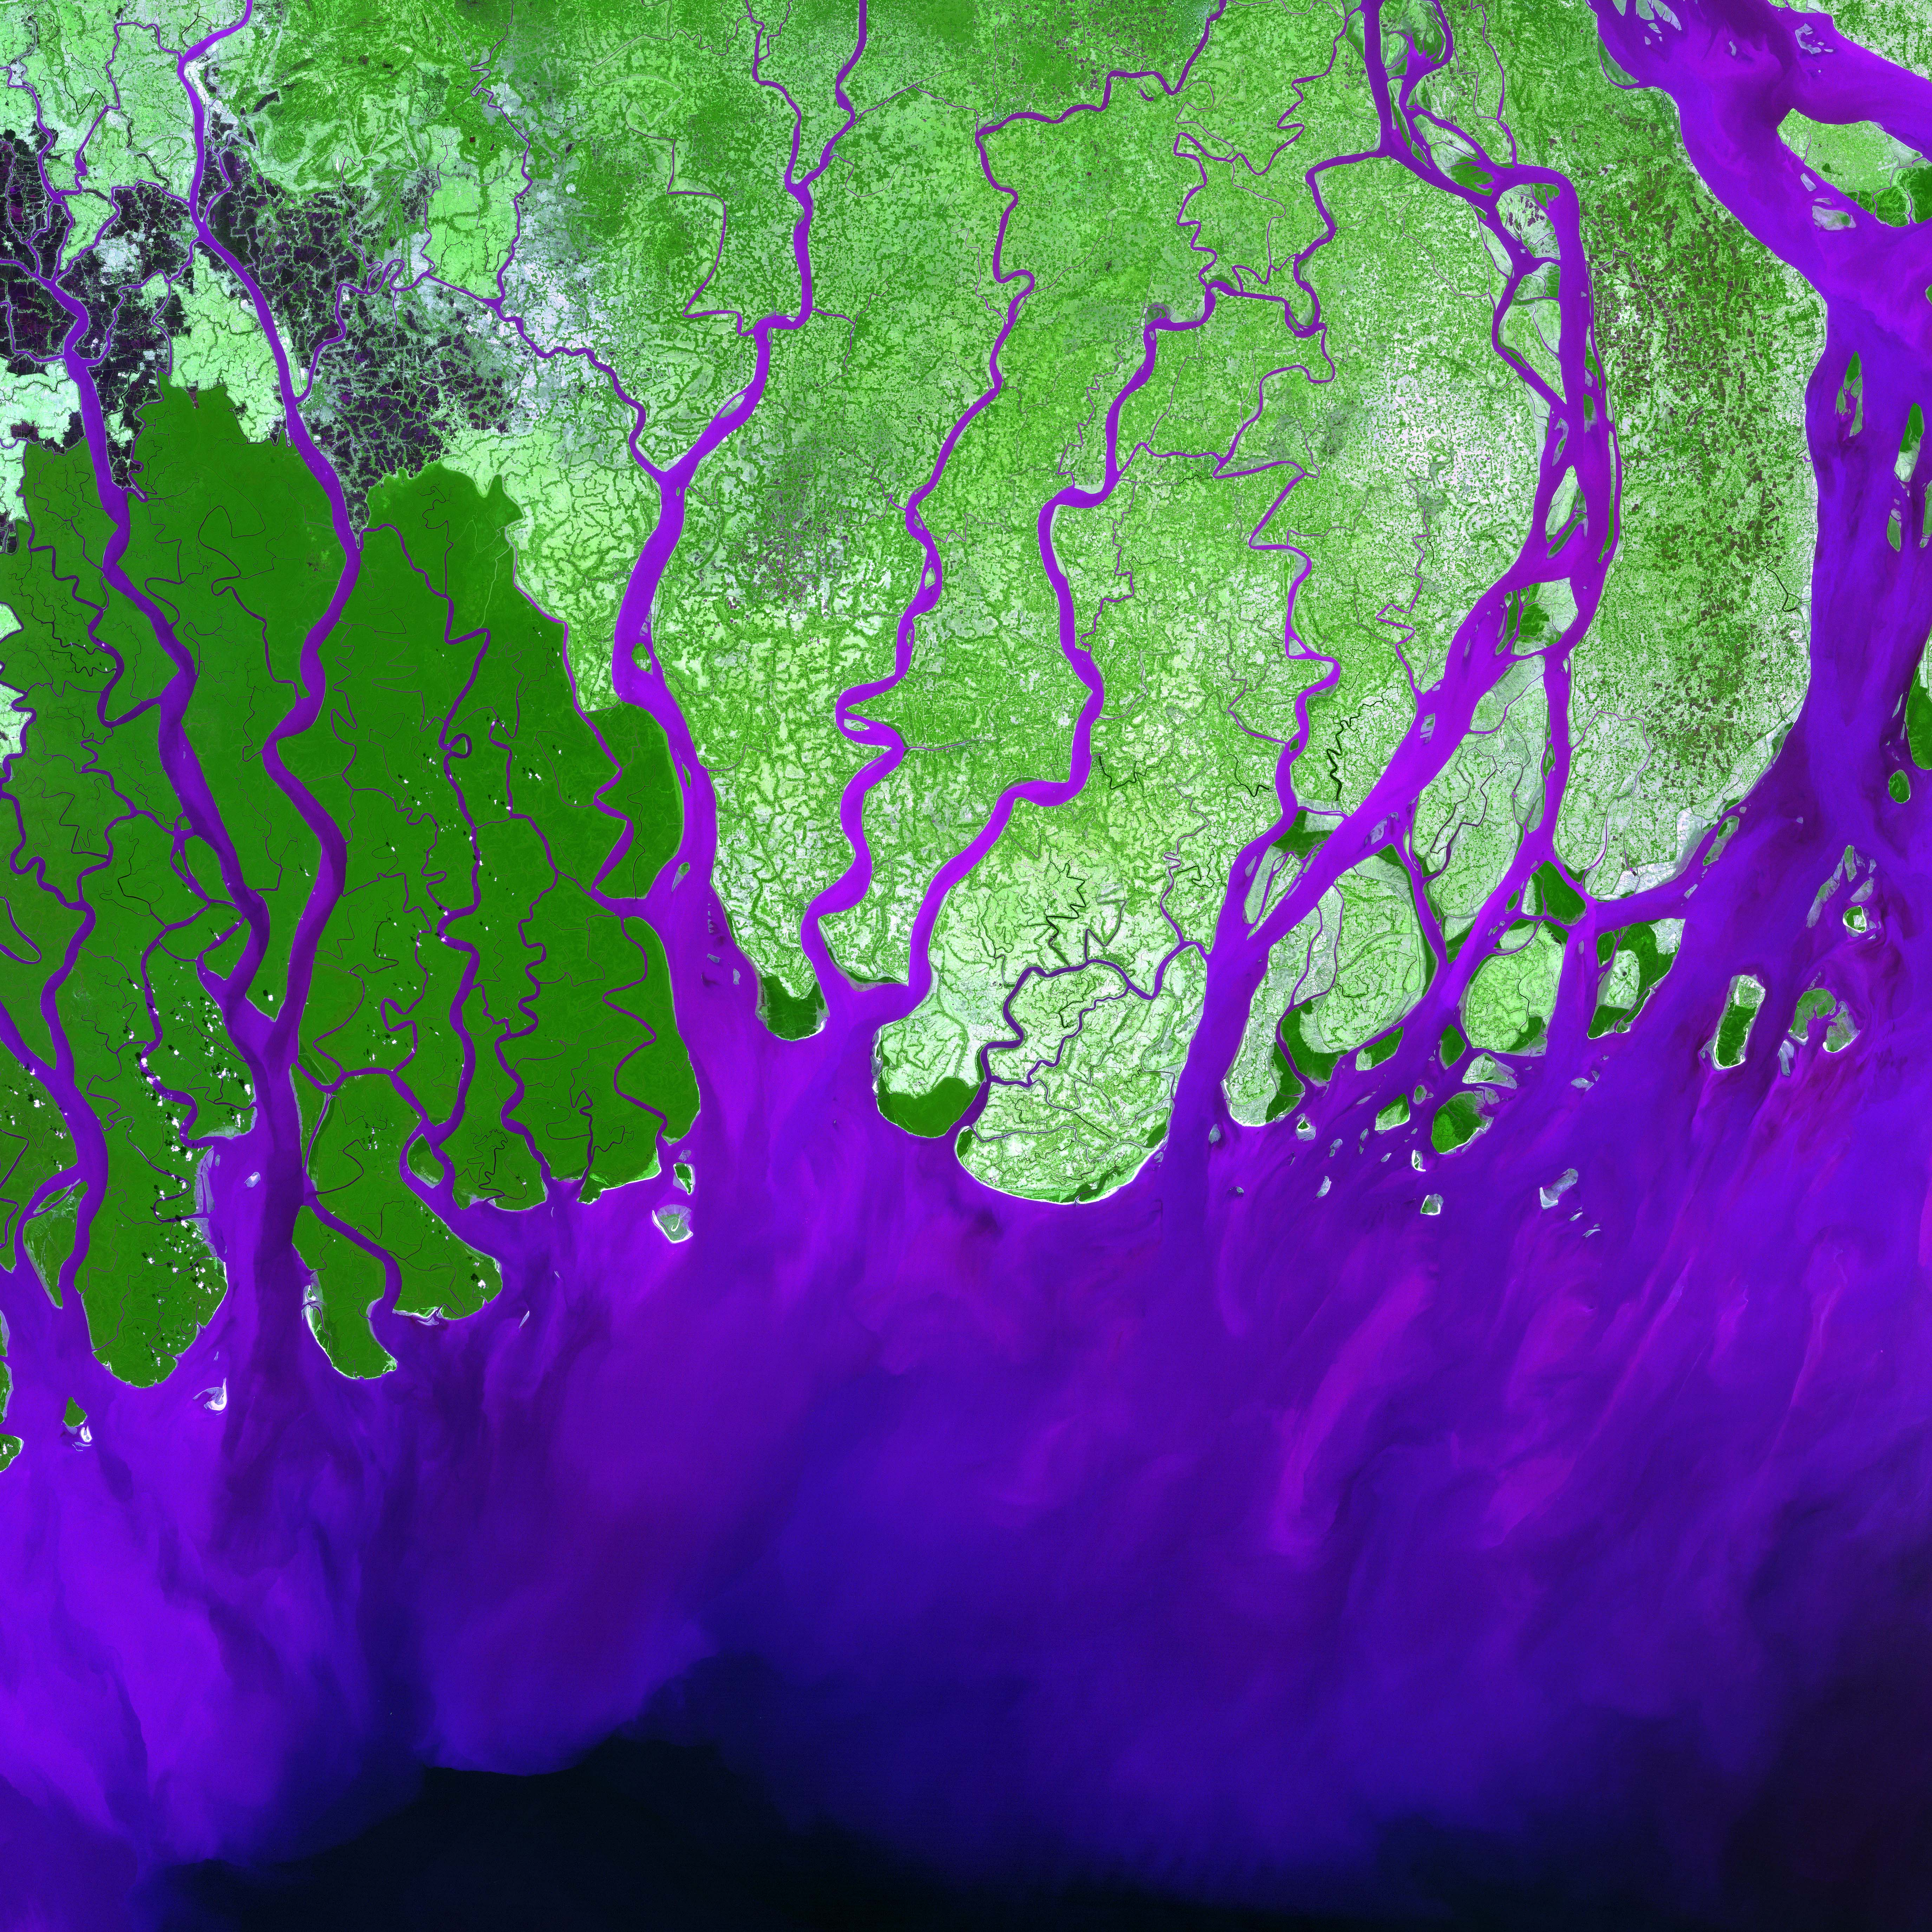 Ganges River Delta  Image of the Day